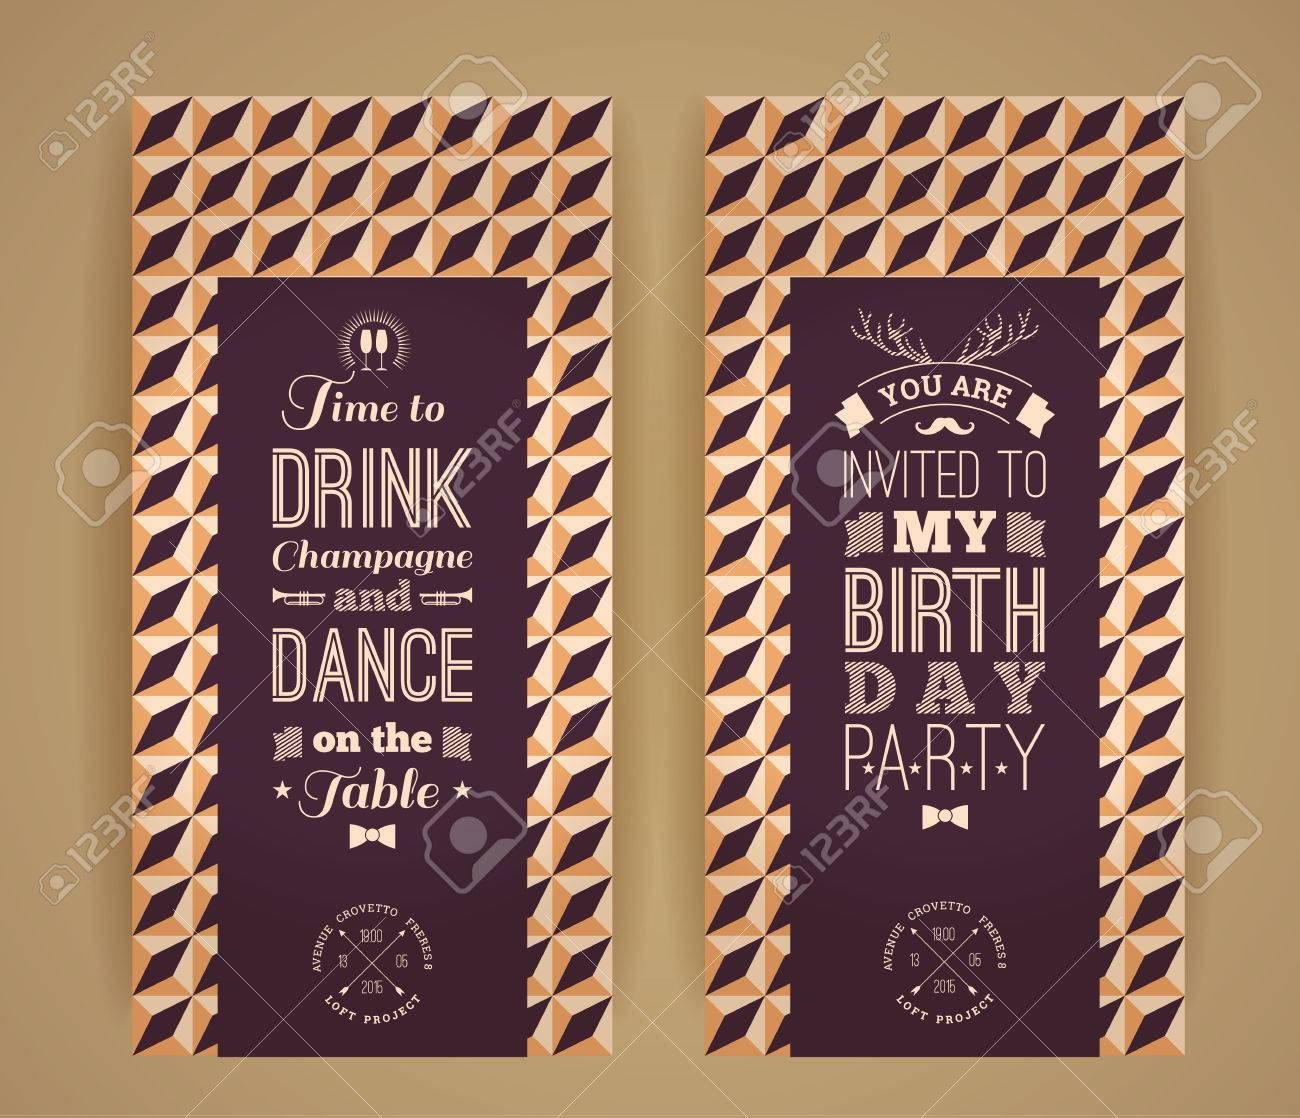 Happy Birthday Invitation Vintage Retro Background With Geometric Pattern Hipster Style Vector Illustration